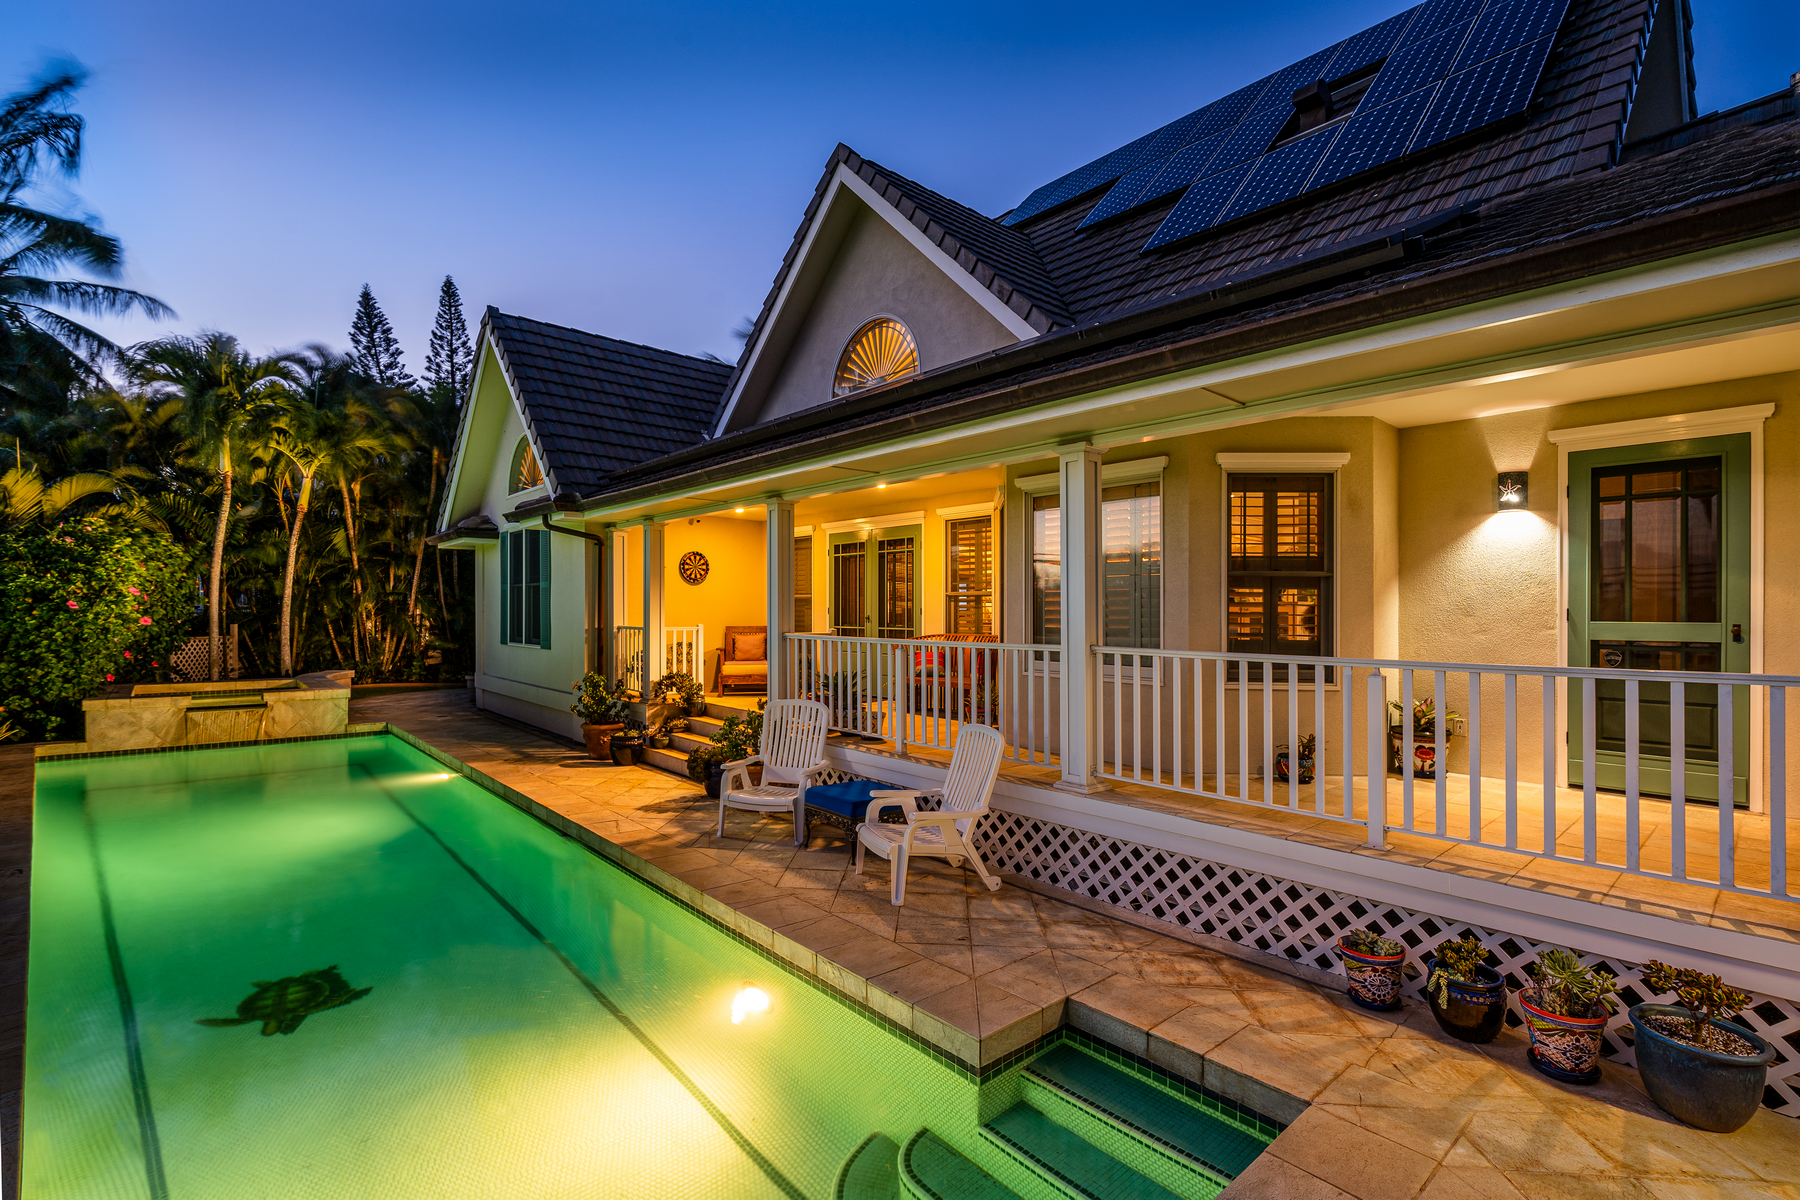 Single Family Homes for Active at Vintage Hawaiiana Style With Modern Sensibility 4946 Lower Honoapiilani Rd Lahaina, Hawaii 96761 United States